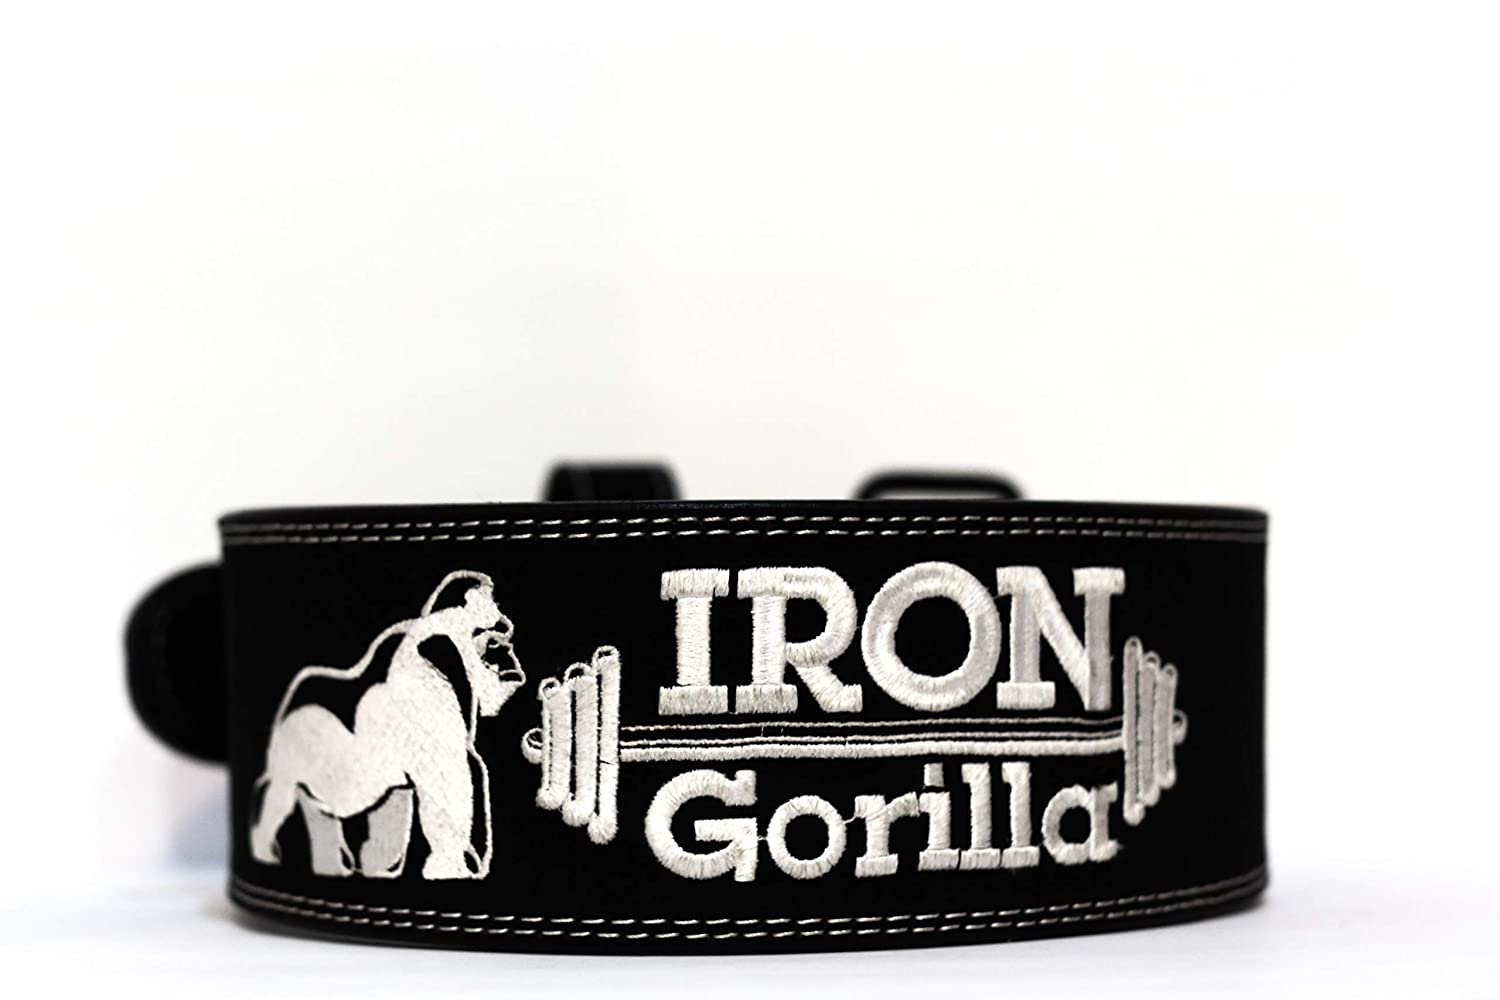 Iron Gorilla Weight Lifting Belt Lifting Belt Powerlifting Belt Belt with Double Prong 100 Cowhide Back Belts for Weight Lifting Great Support Belt for Lifting